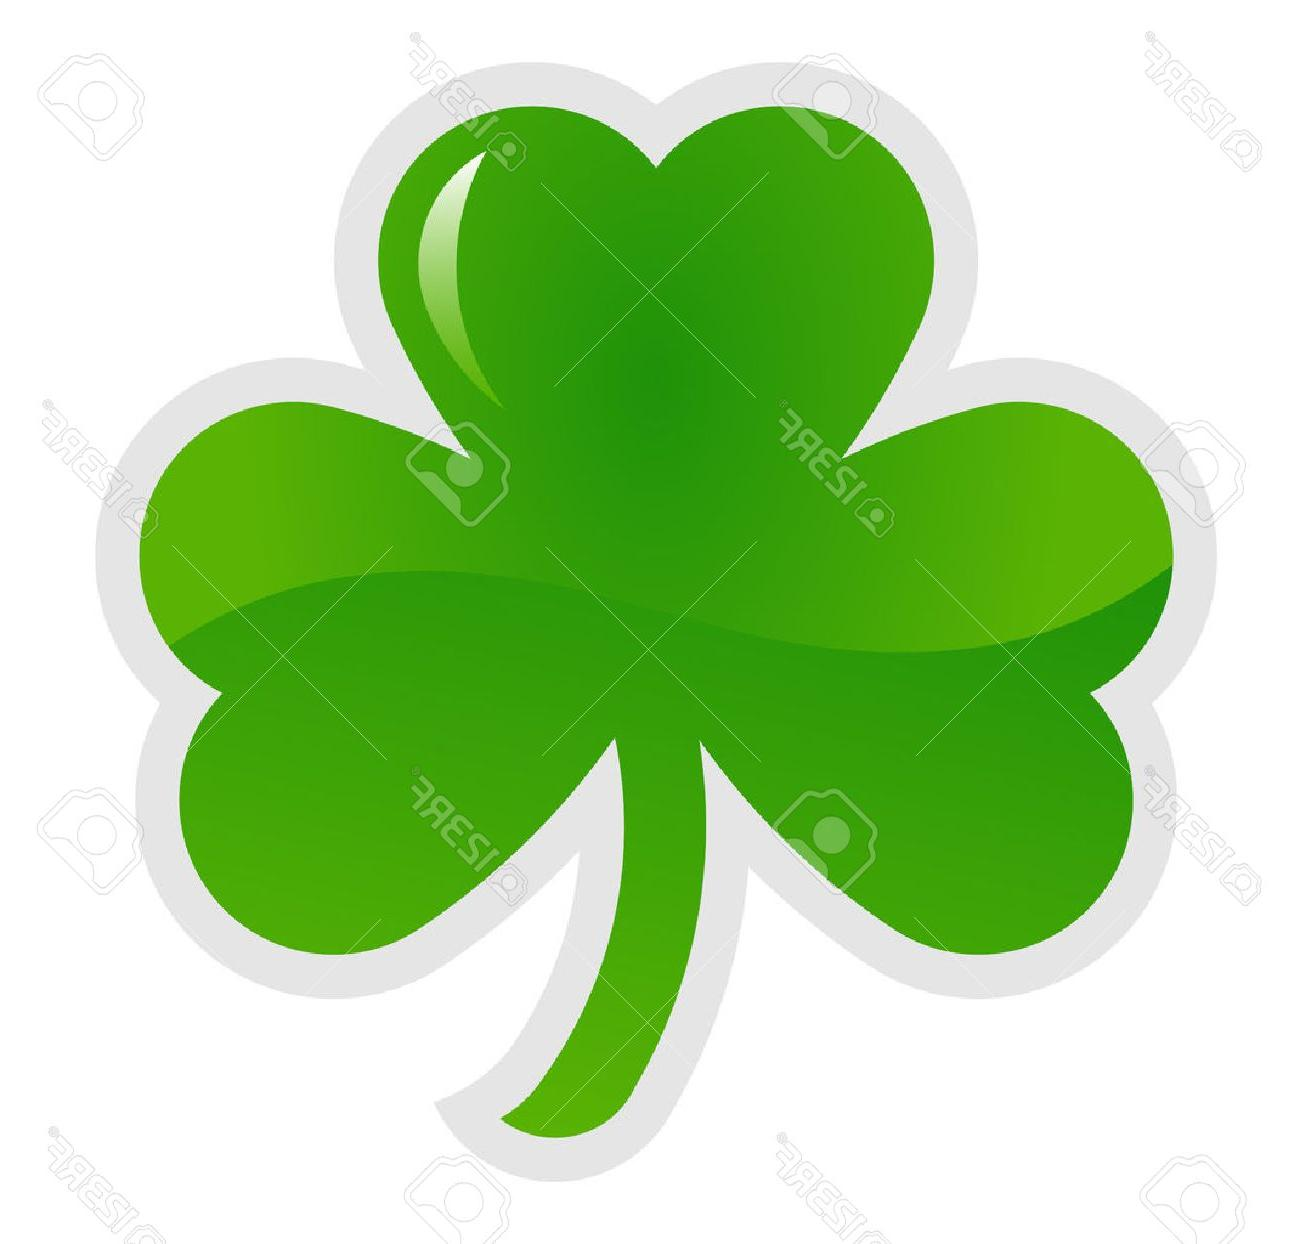 Best Free 3 Leaf Clover Vector Pictures » Free Vector Art, Images.